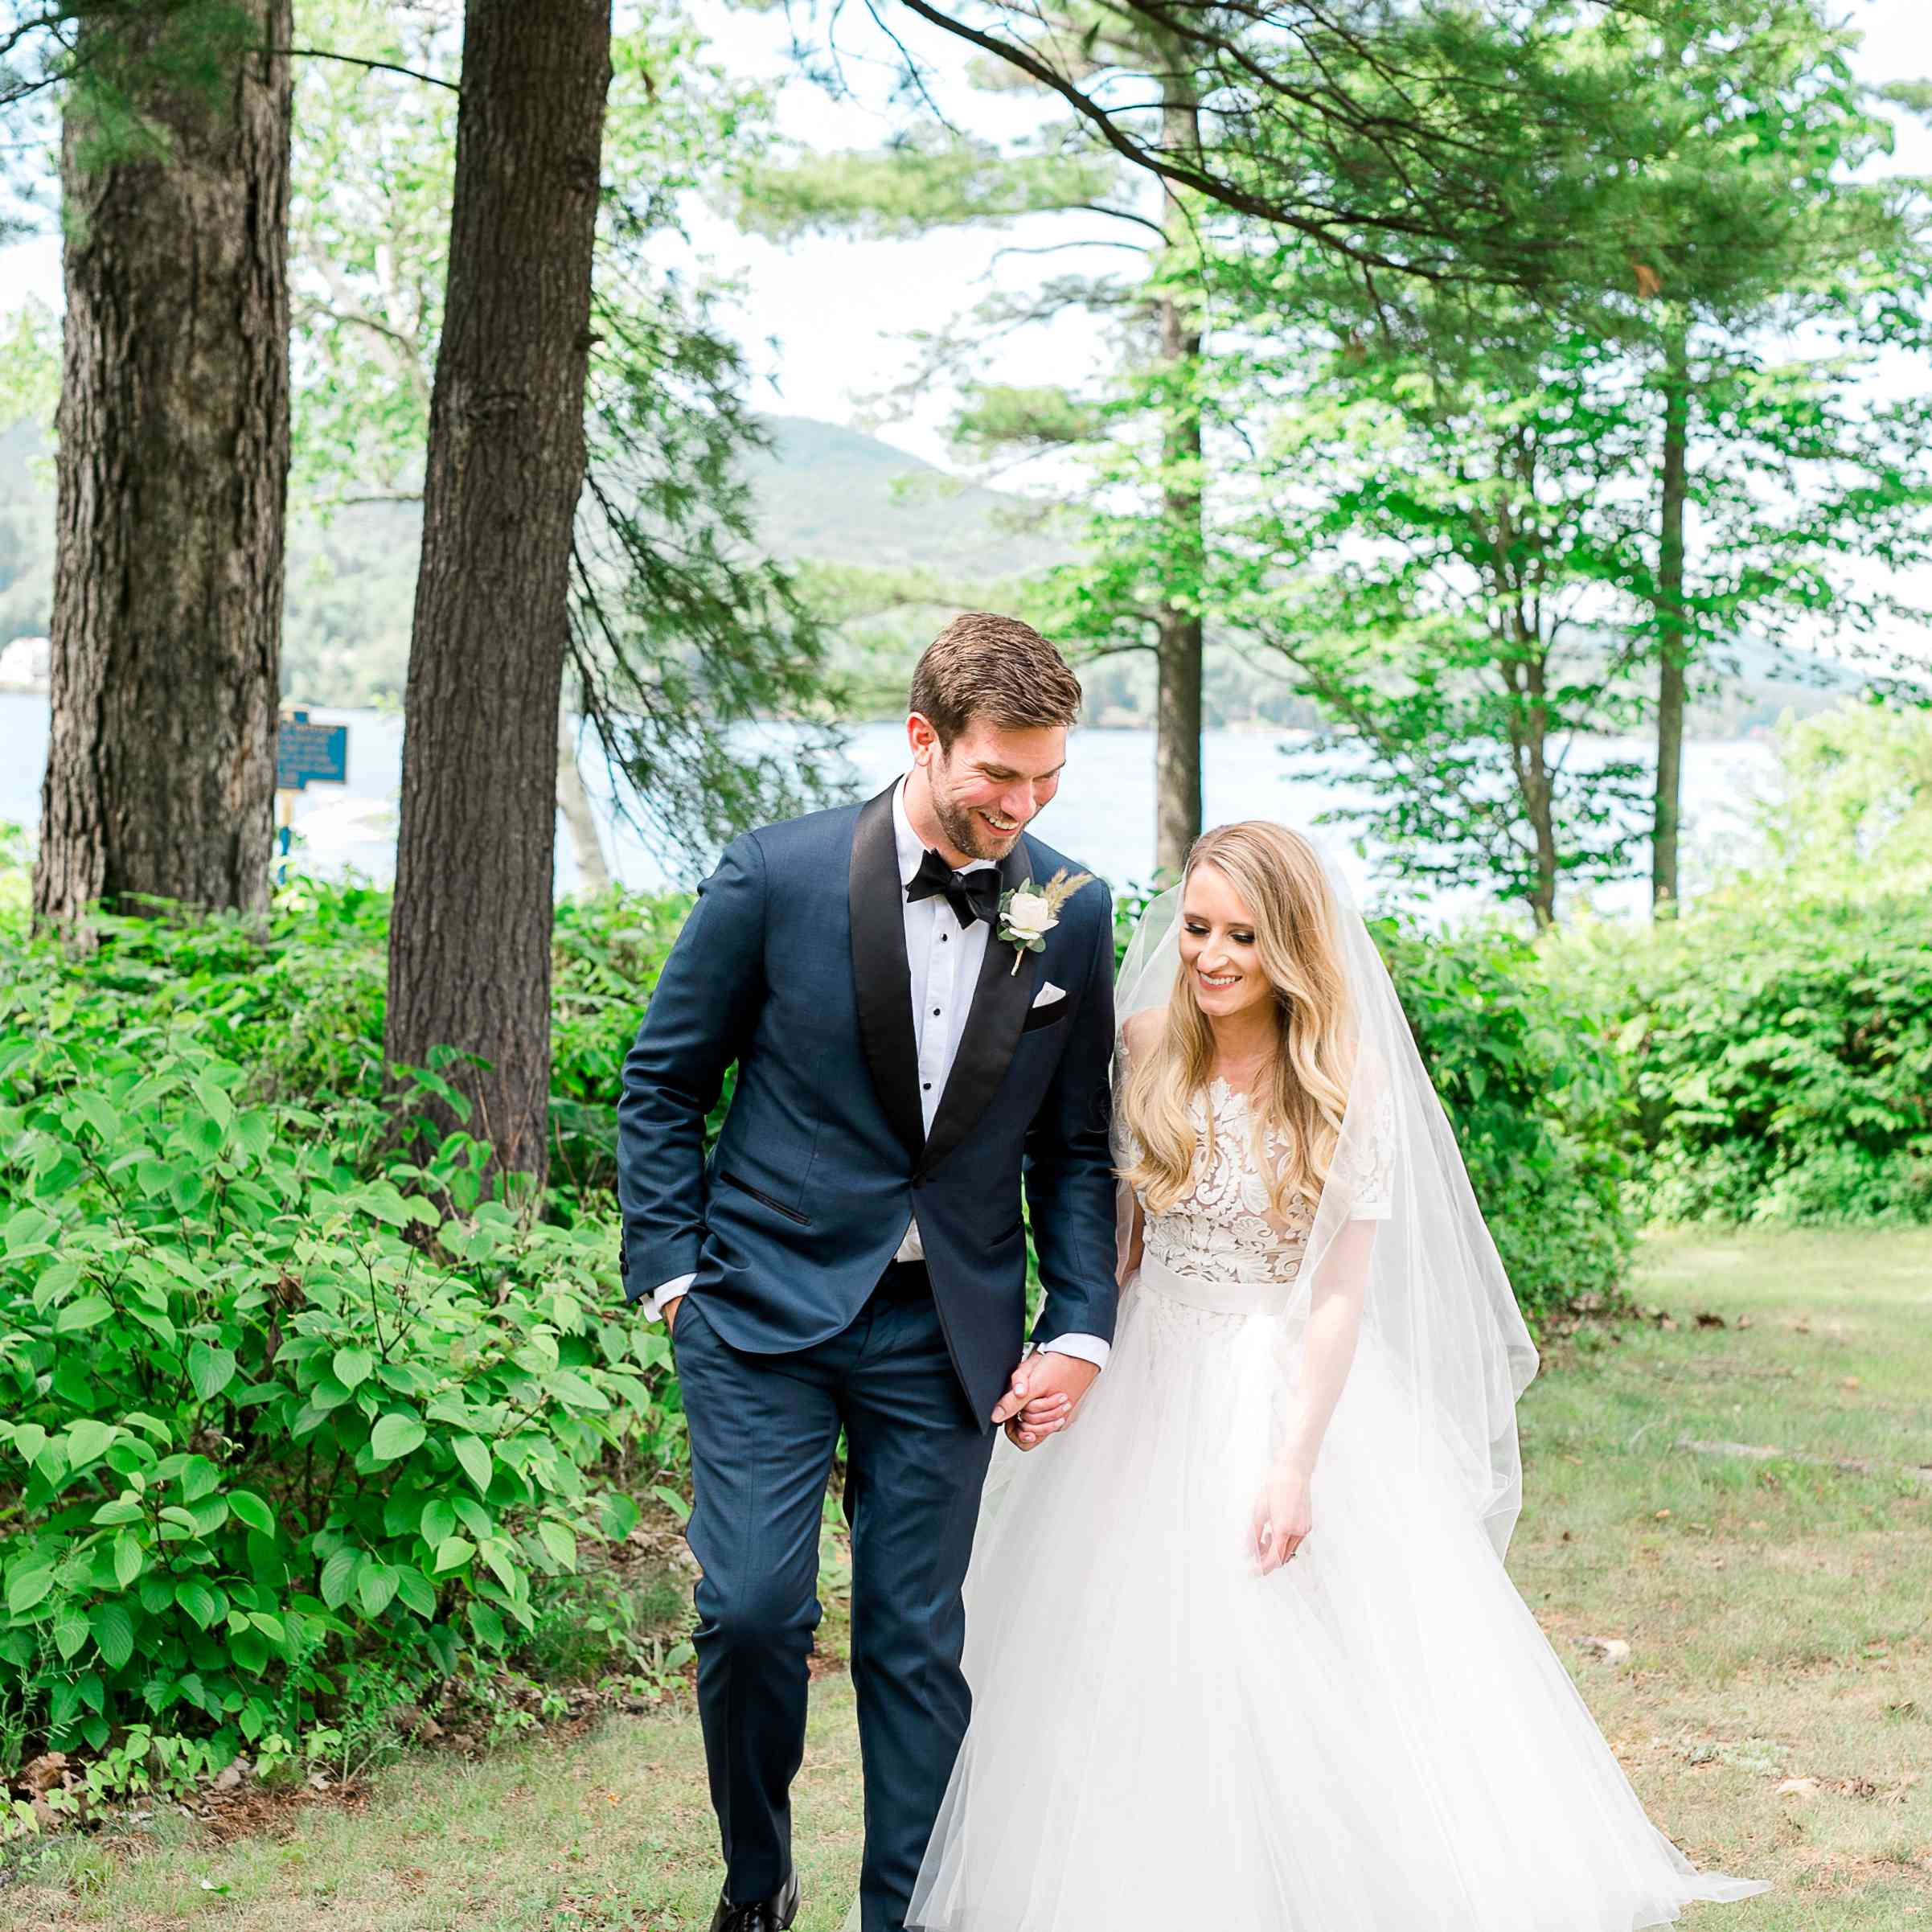 <p>Bride and groom holding hands</p><br><br>